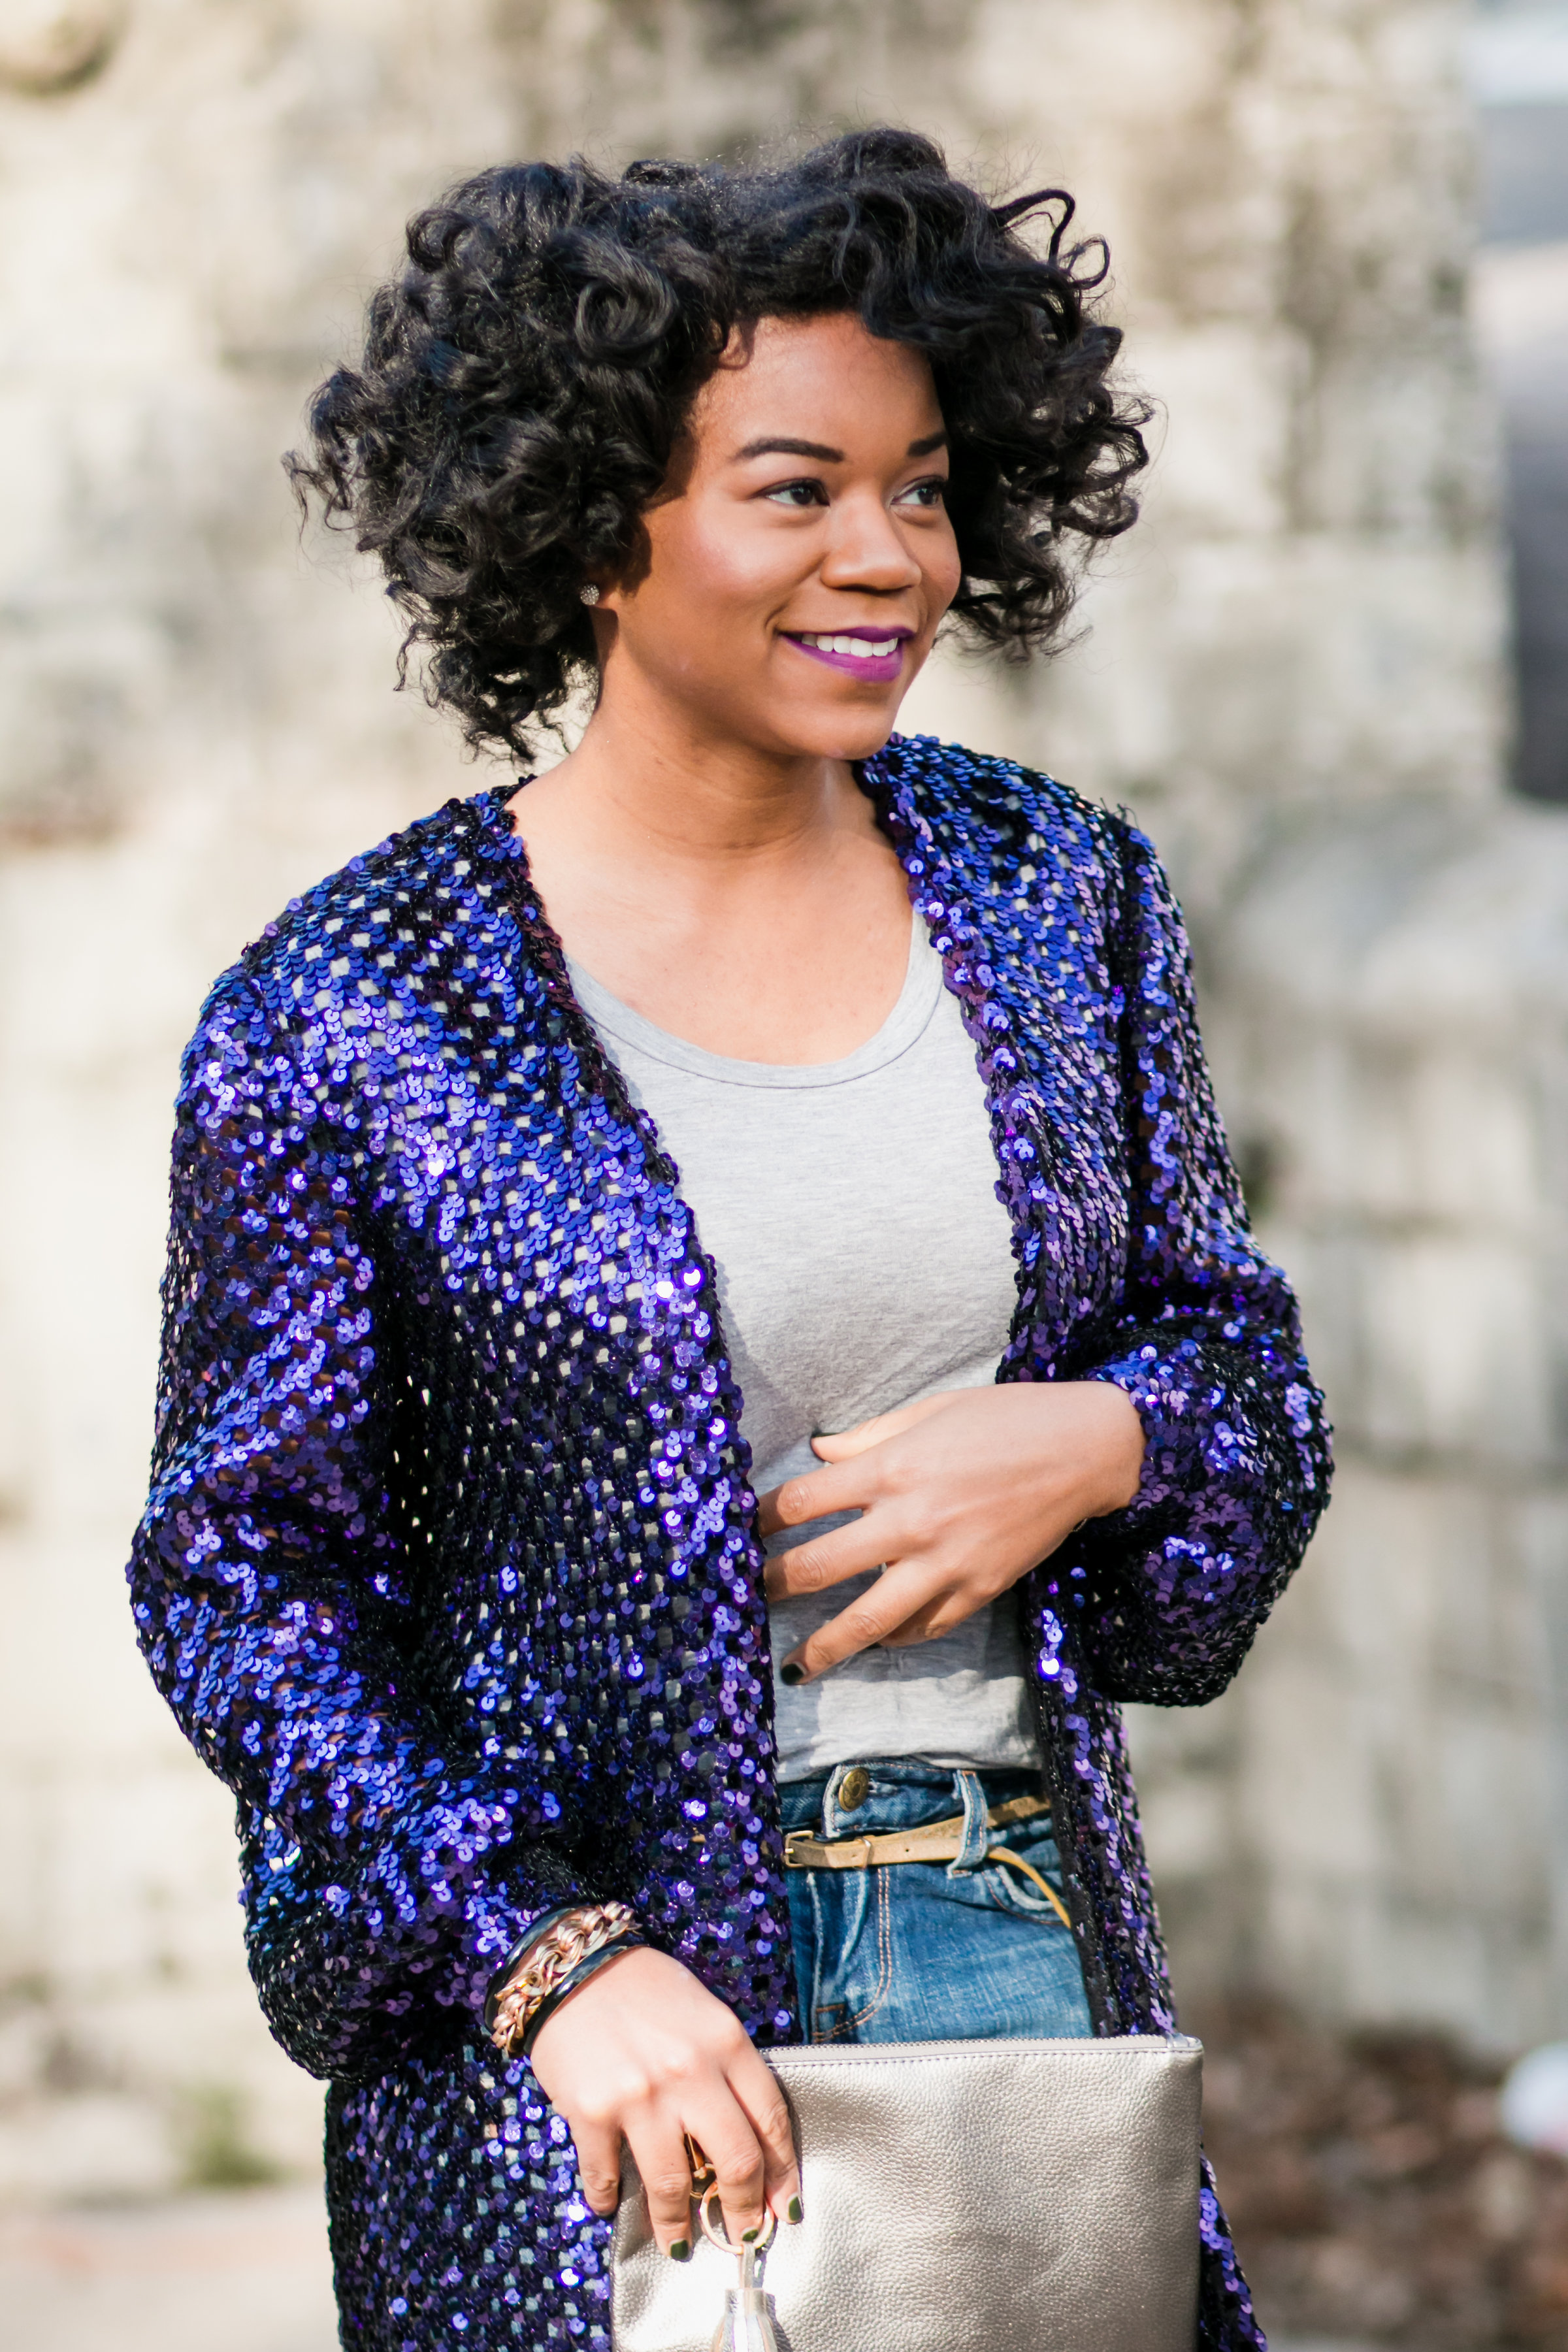 Images by Amber Robinson | Niki M | Sequins